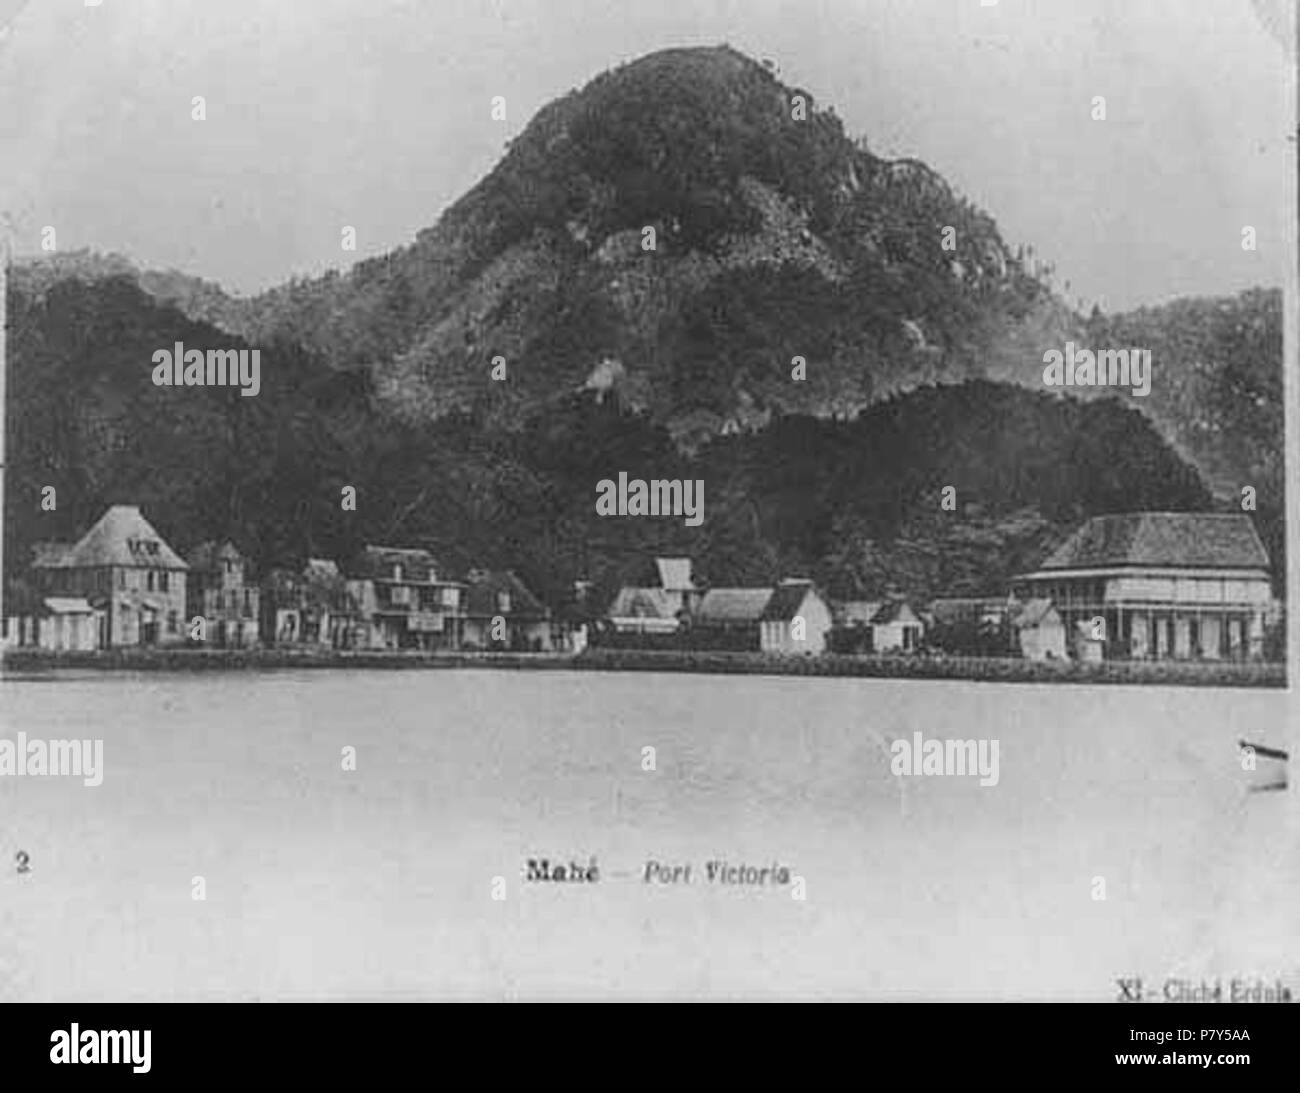 N/A. N/A 391 Victoria Seychelles 1900s - Stock Image